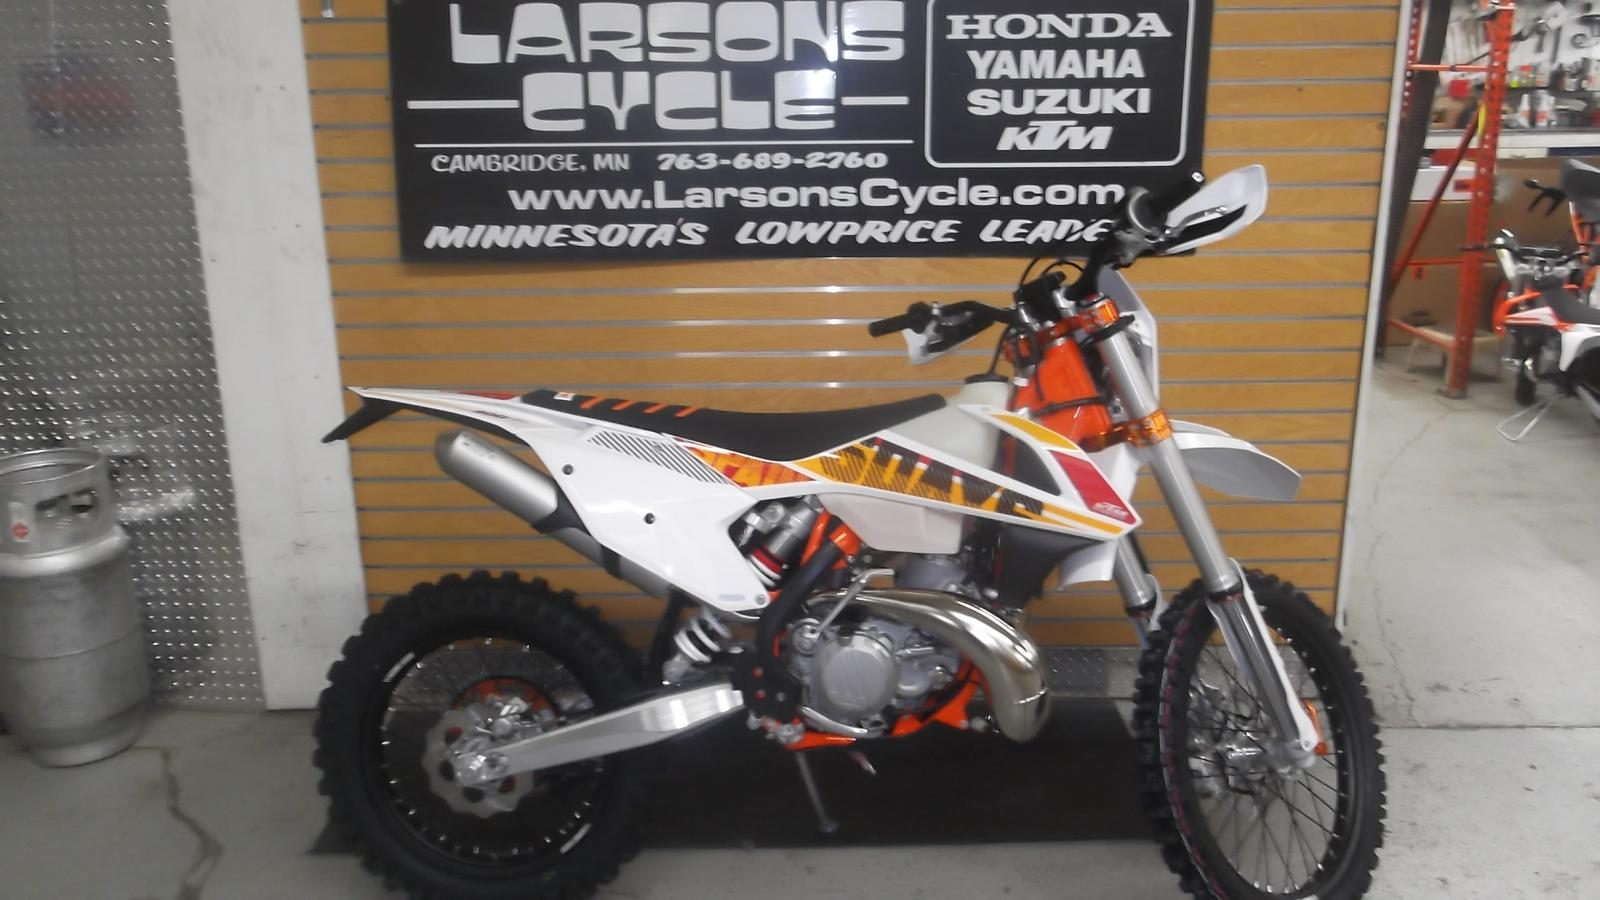 2017 ktm 300 xc-w six days for sale in cambridge, mn | larson's